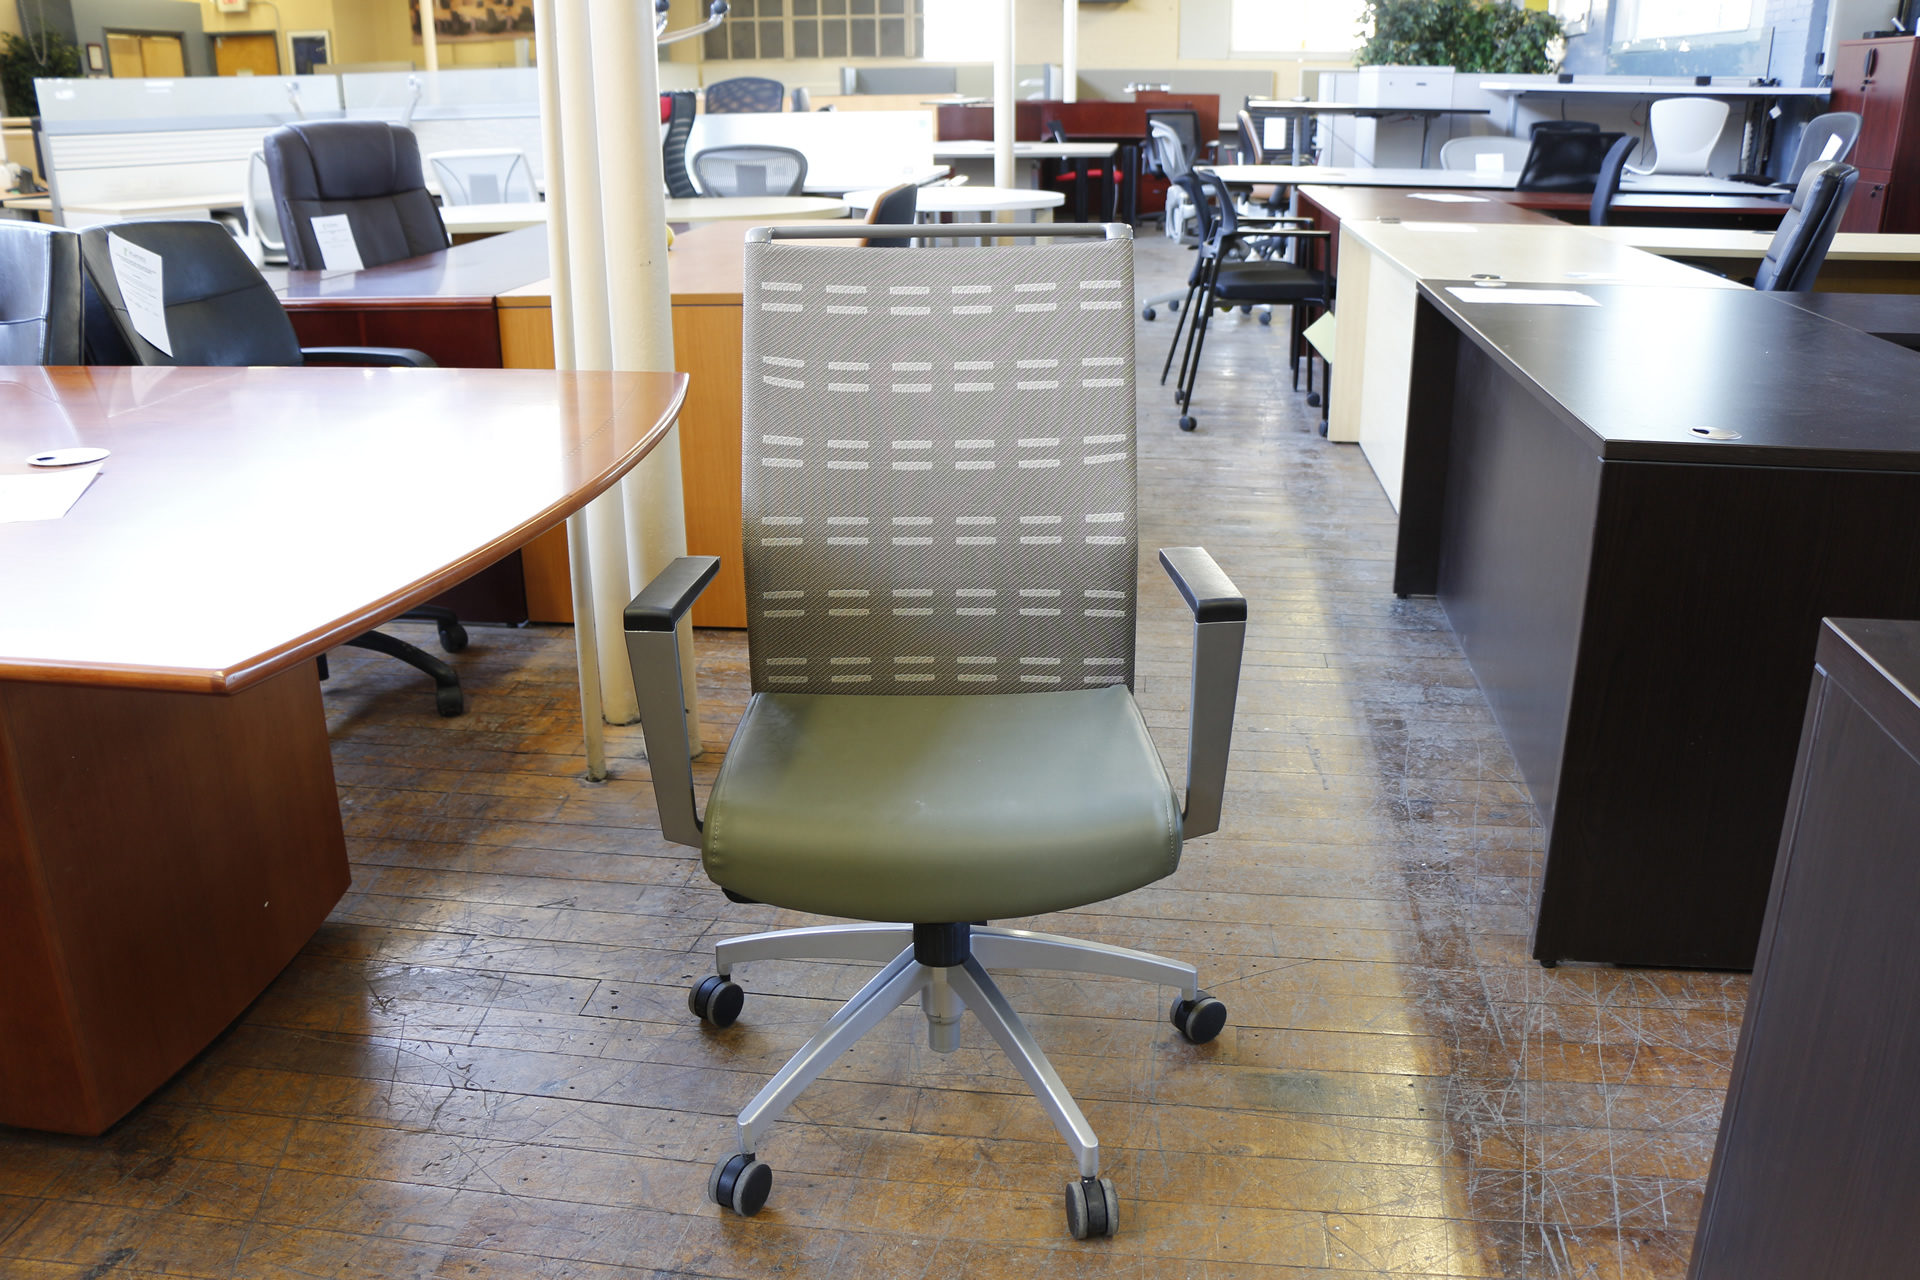 peartreeofficefurniture_peartreeofficefurniture_mg_5226.jpg